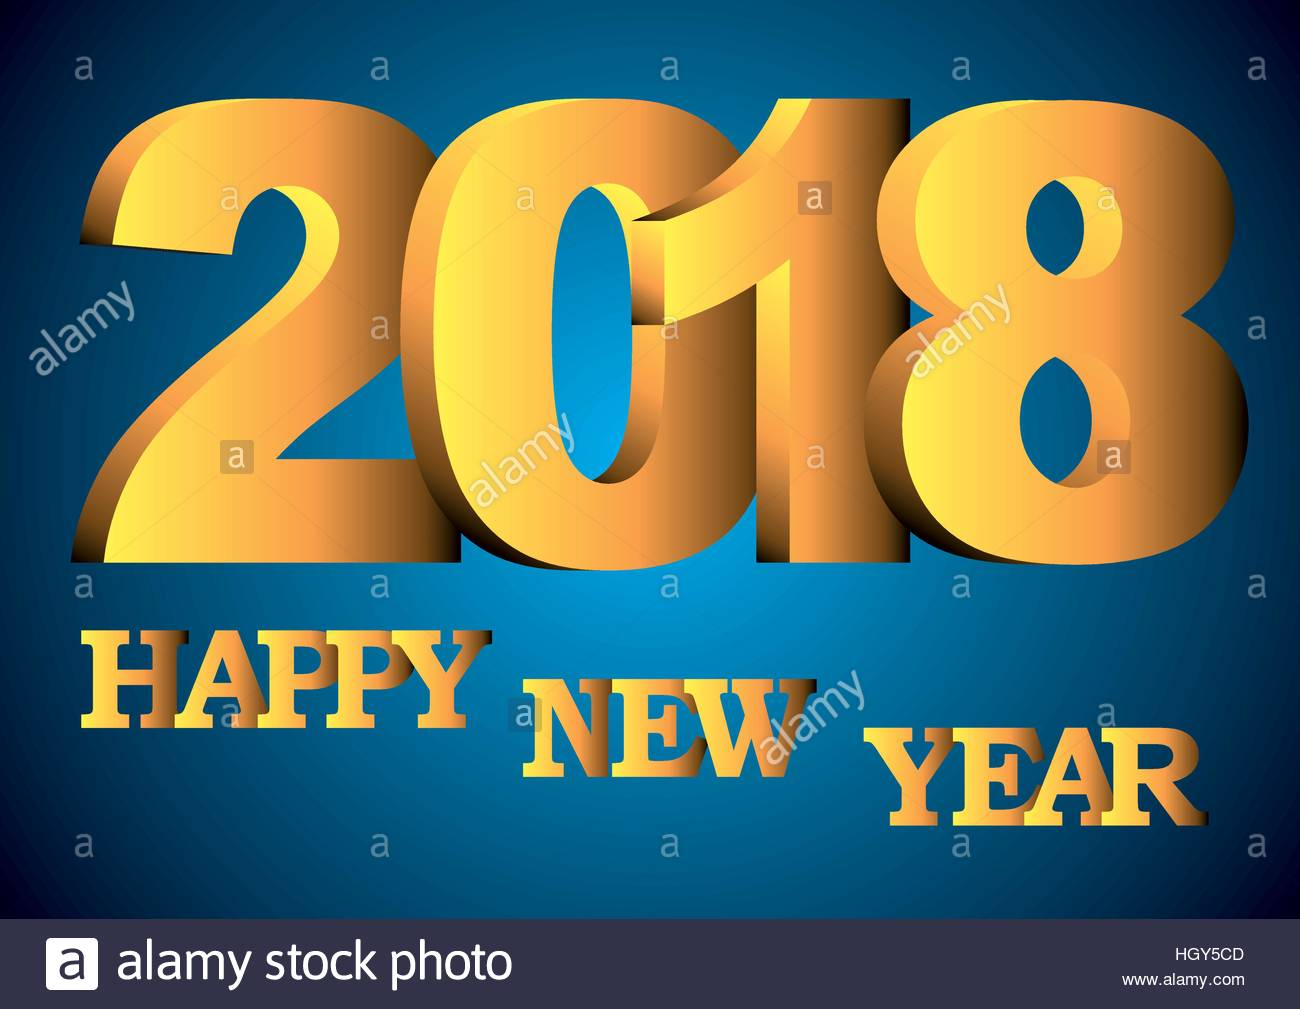 happy new year 2018 greeting card with shiny shinygolden numbers and letters